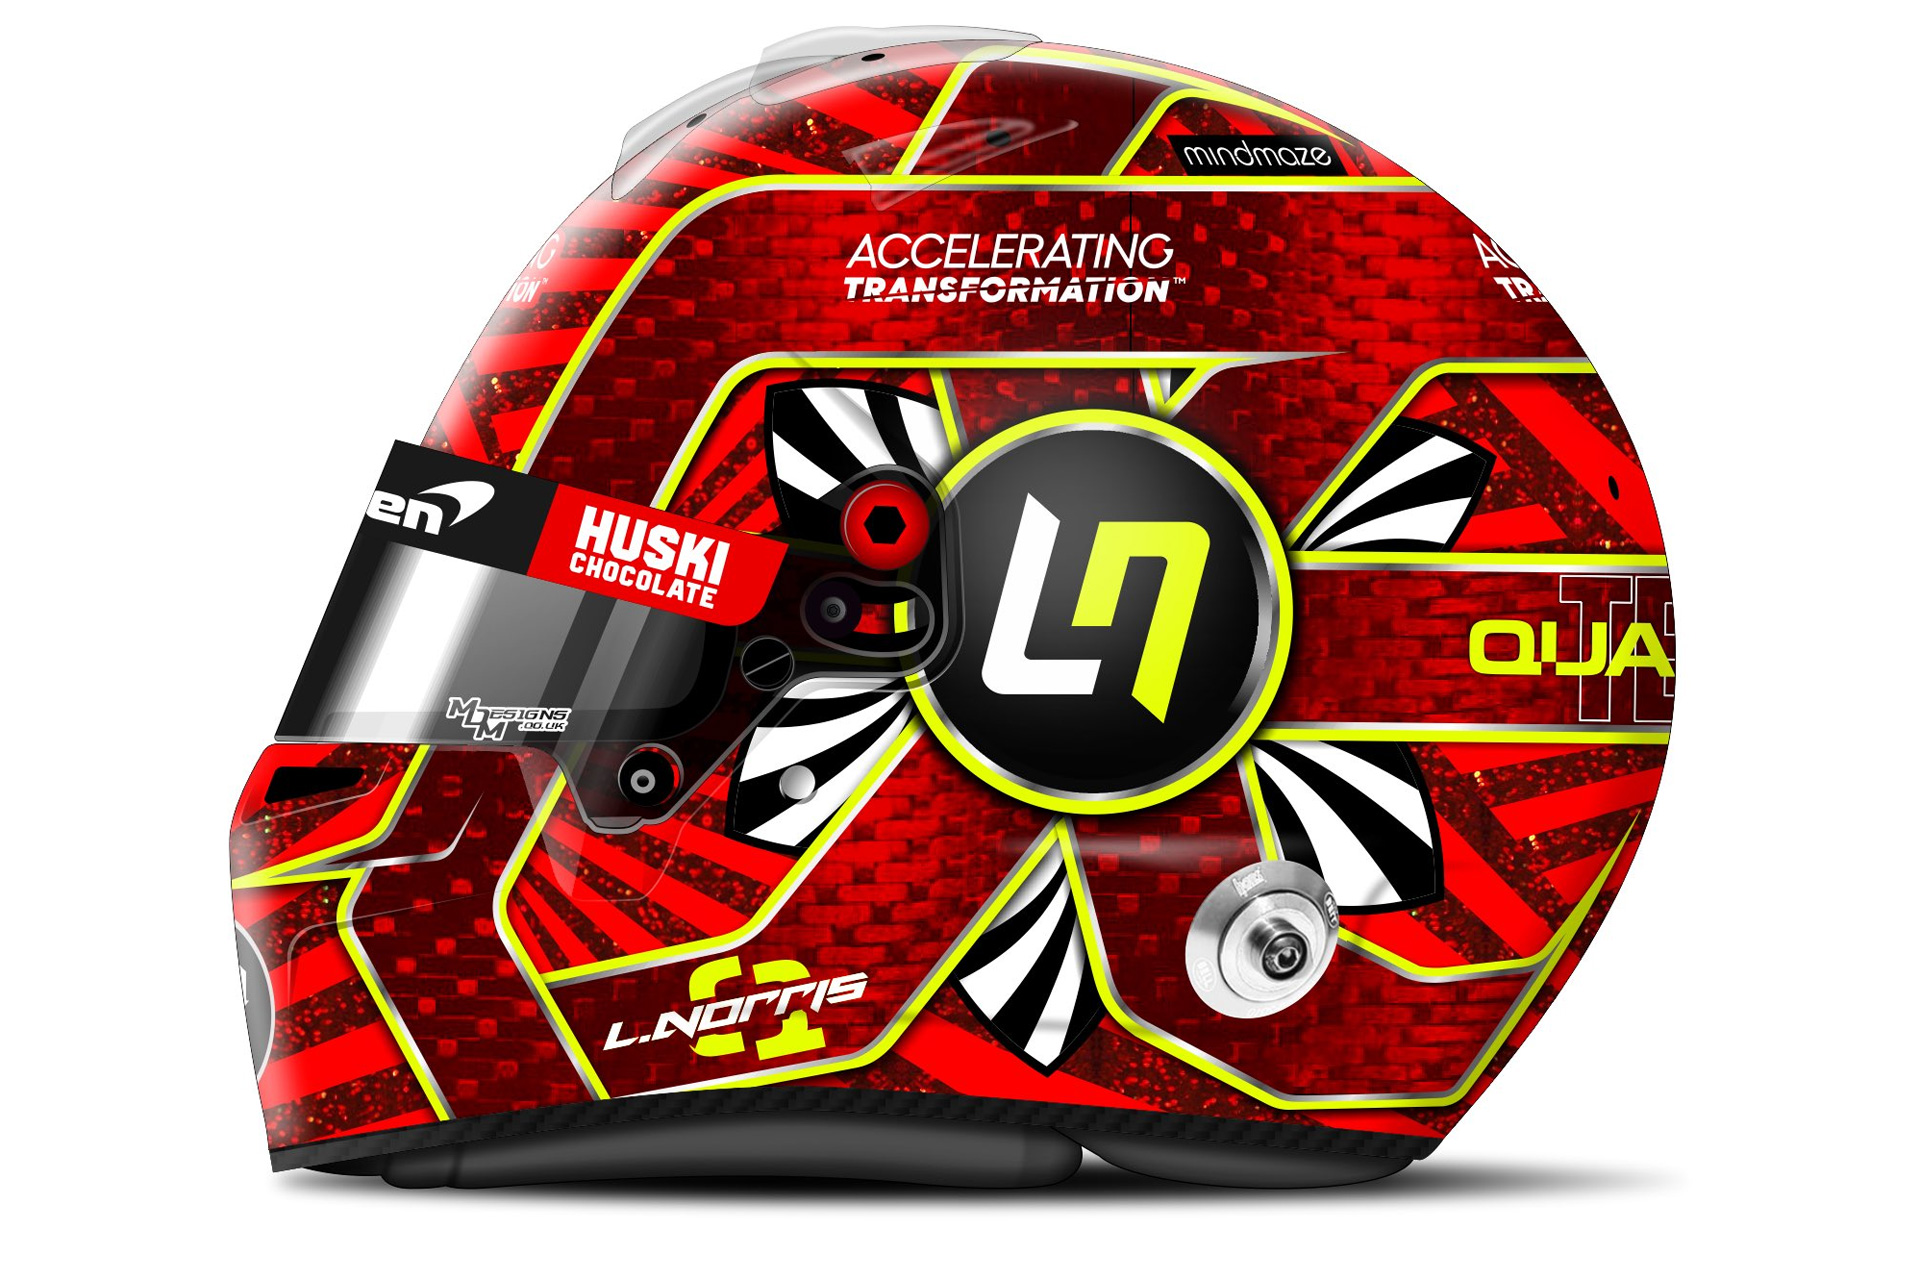 Lando Norr's unraced 2020 Turkish Grand Prix helmet